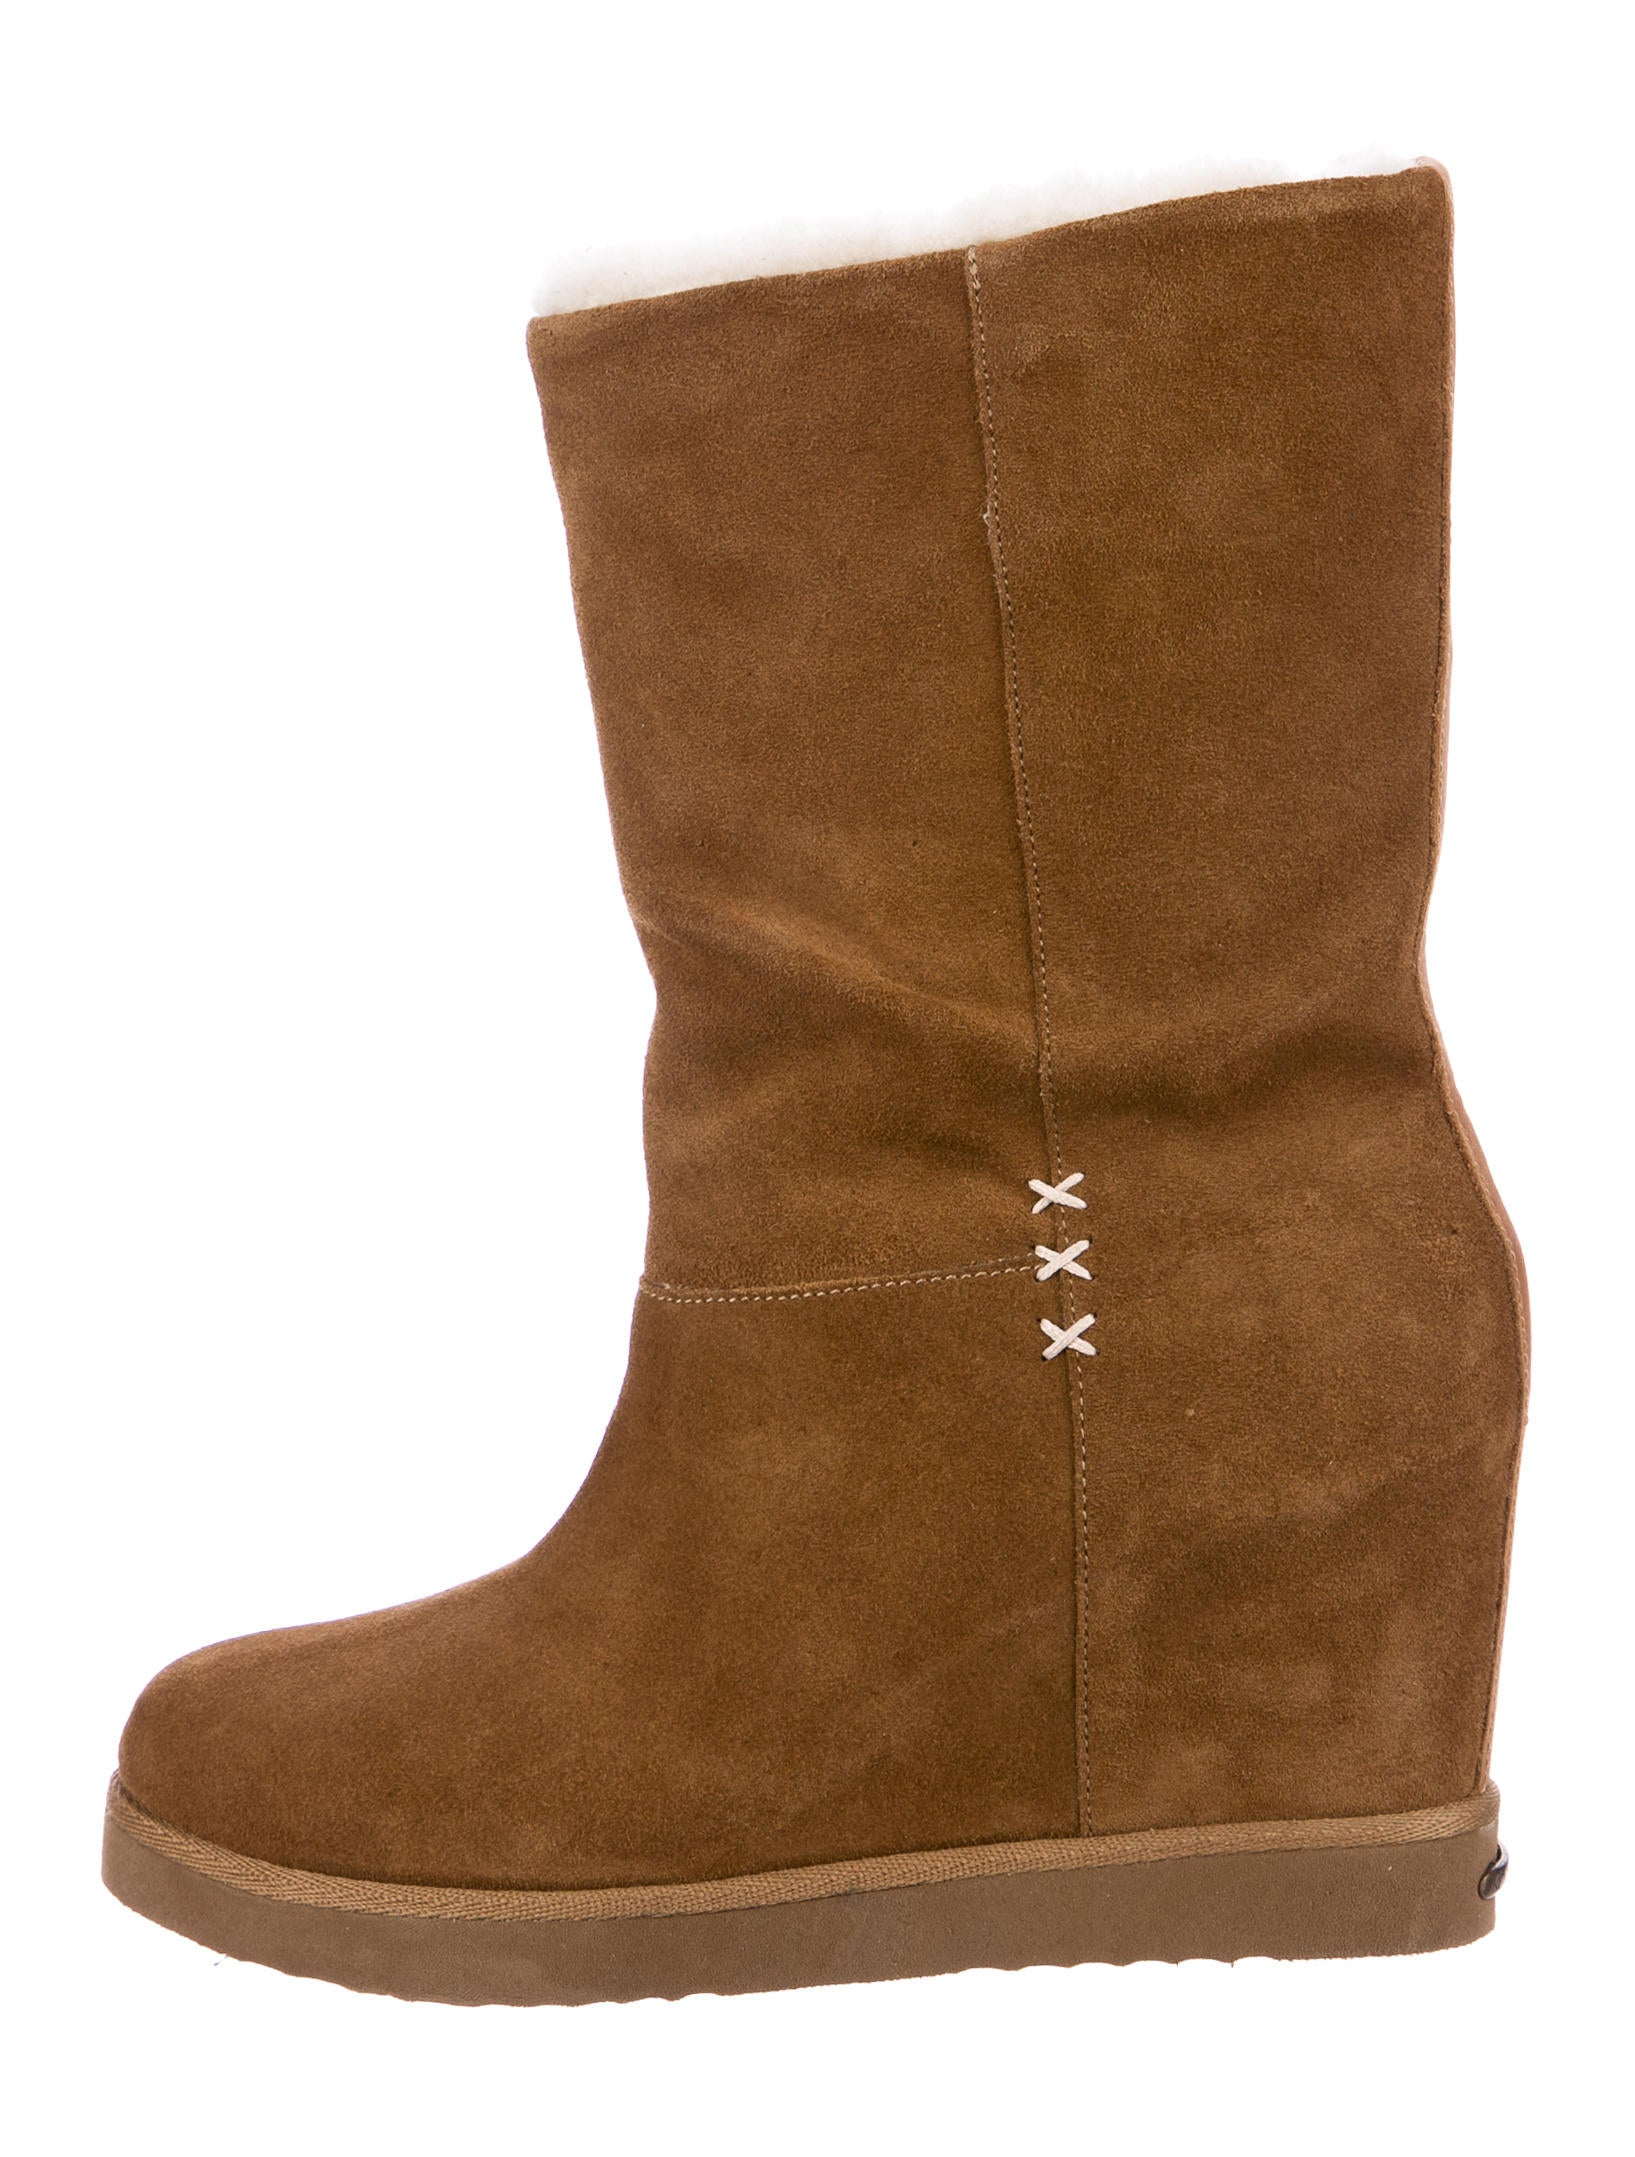 fe6addfbc52 Koolaburra Wedge Boots - Ivoiregion